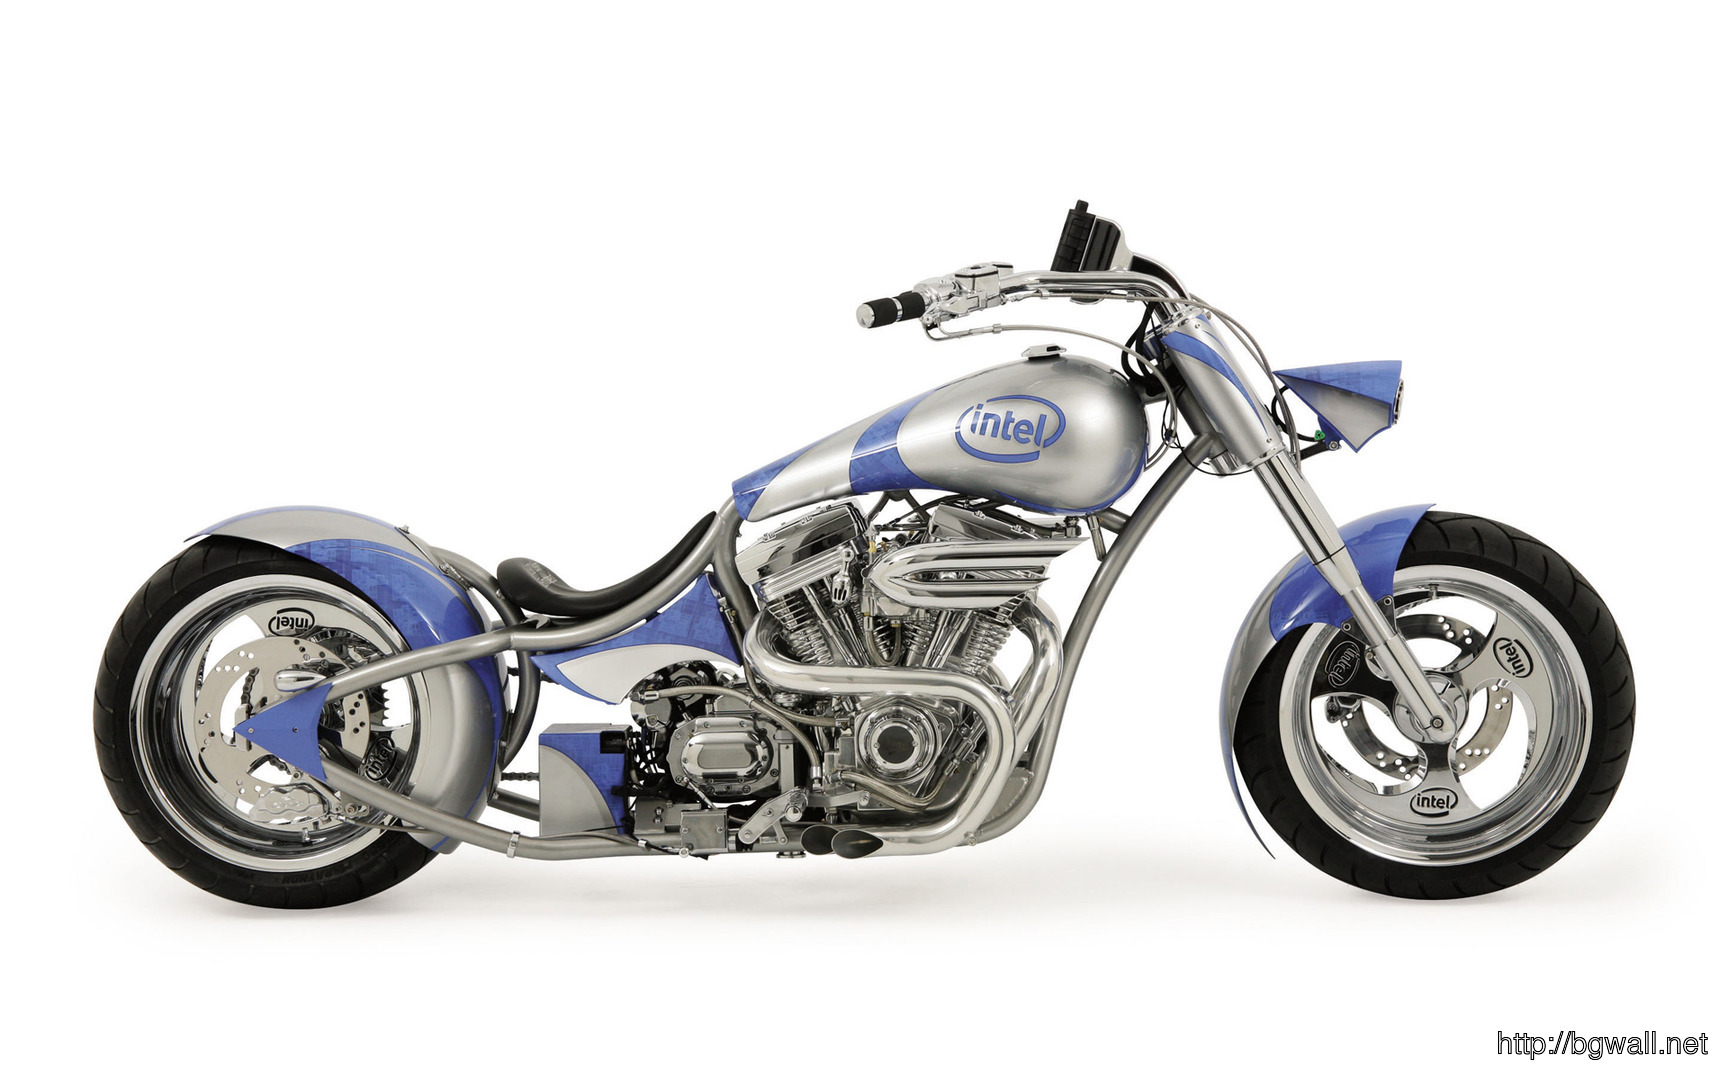 Intel Custom Chopper Wallpaper 1851